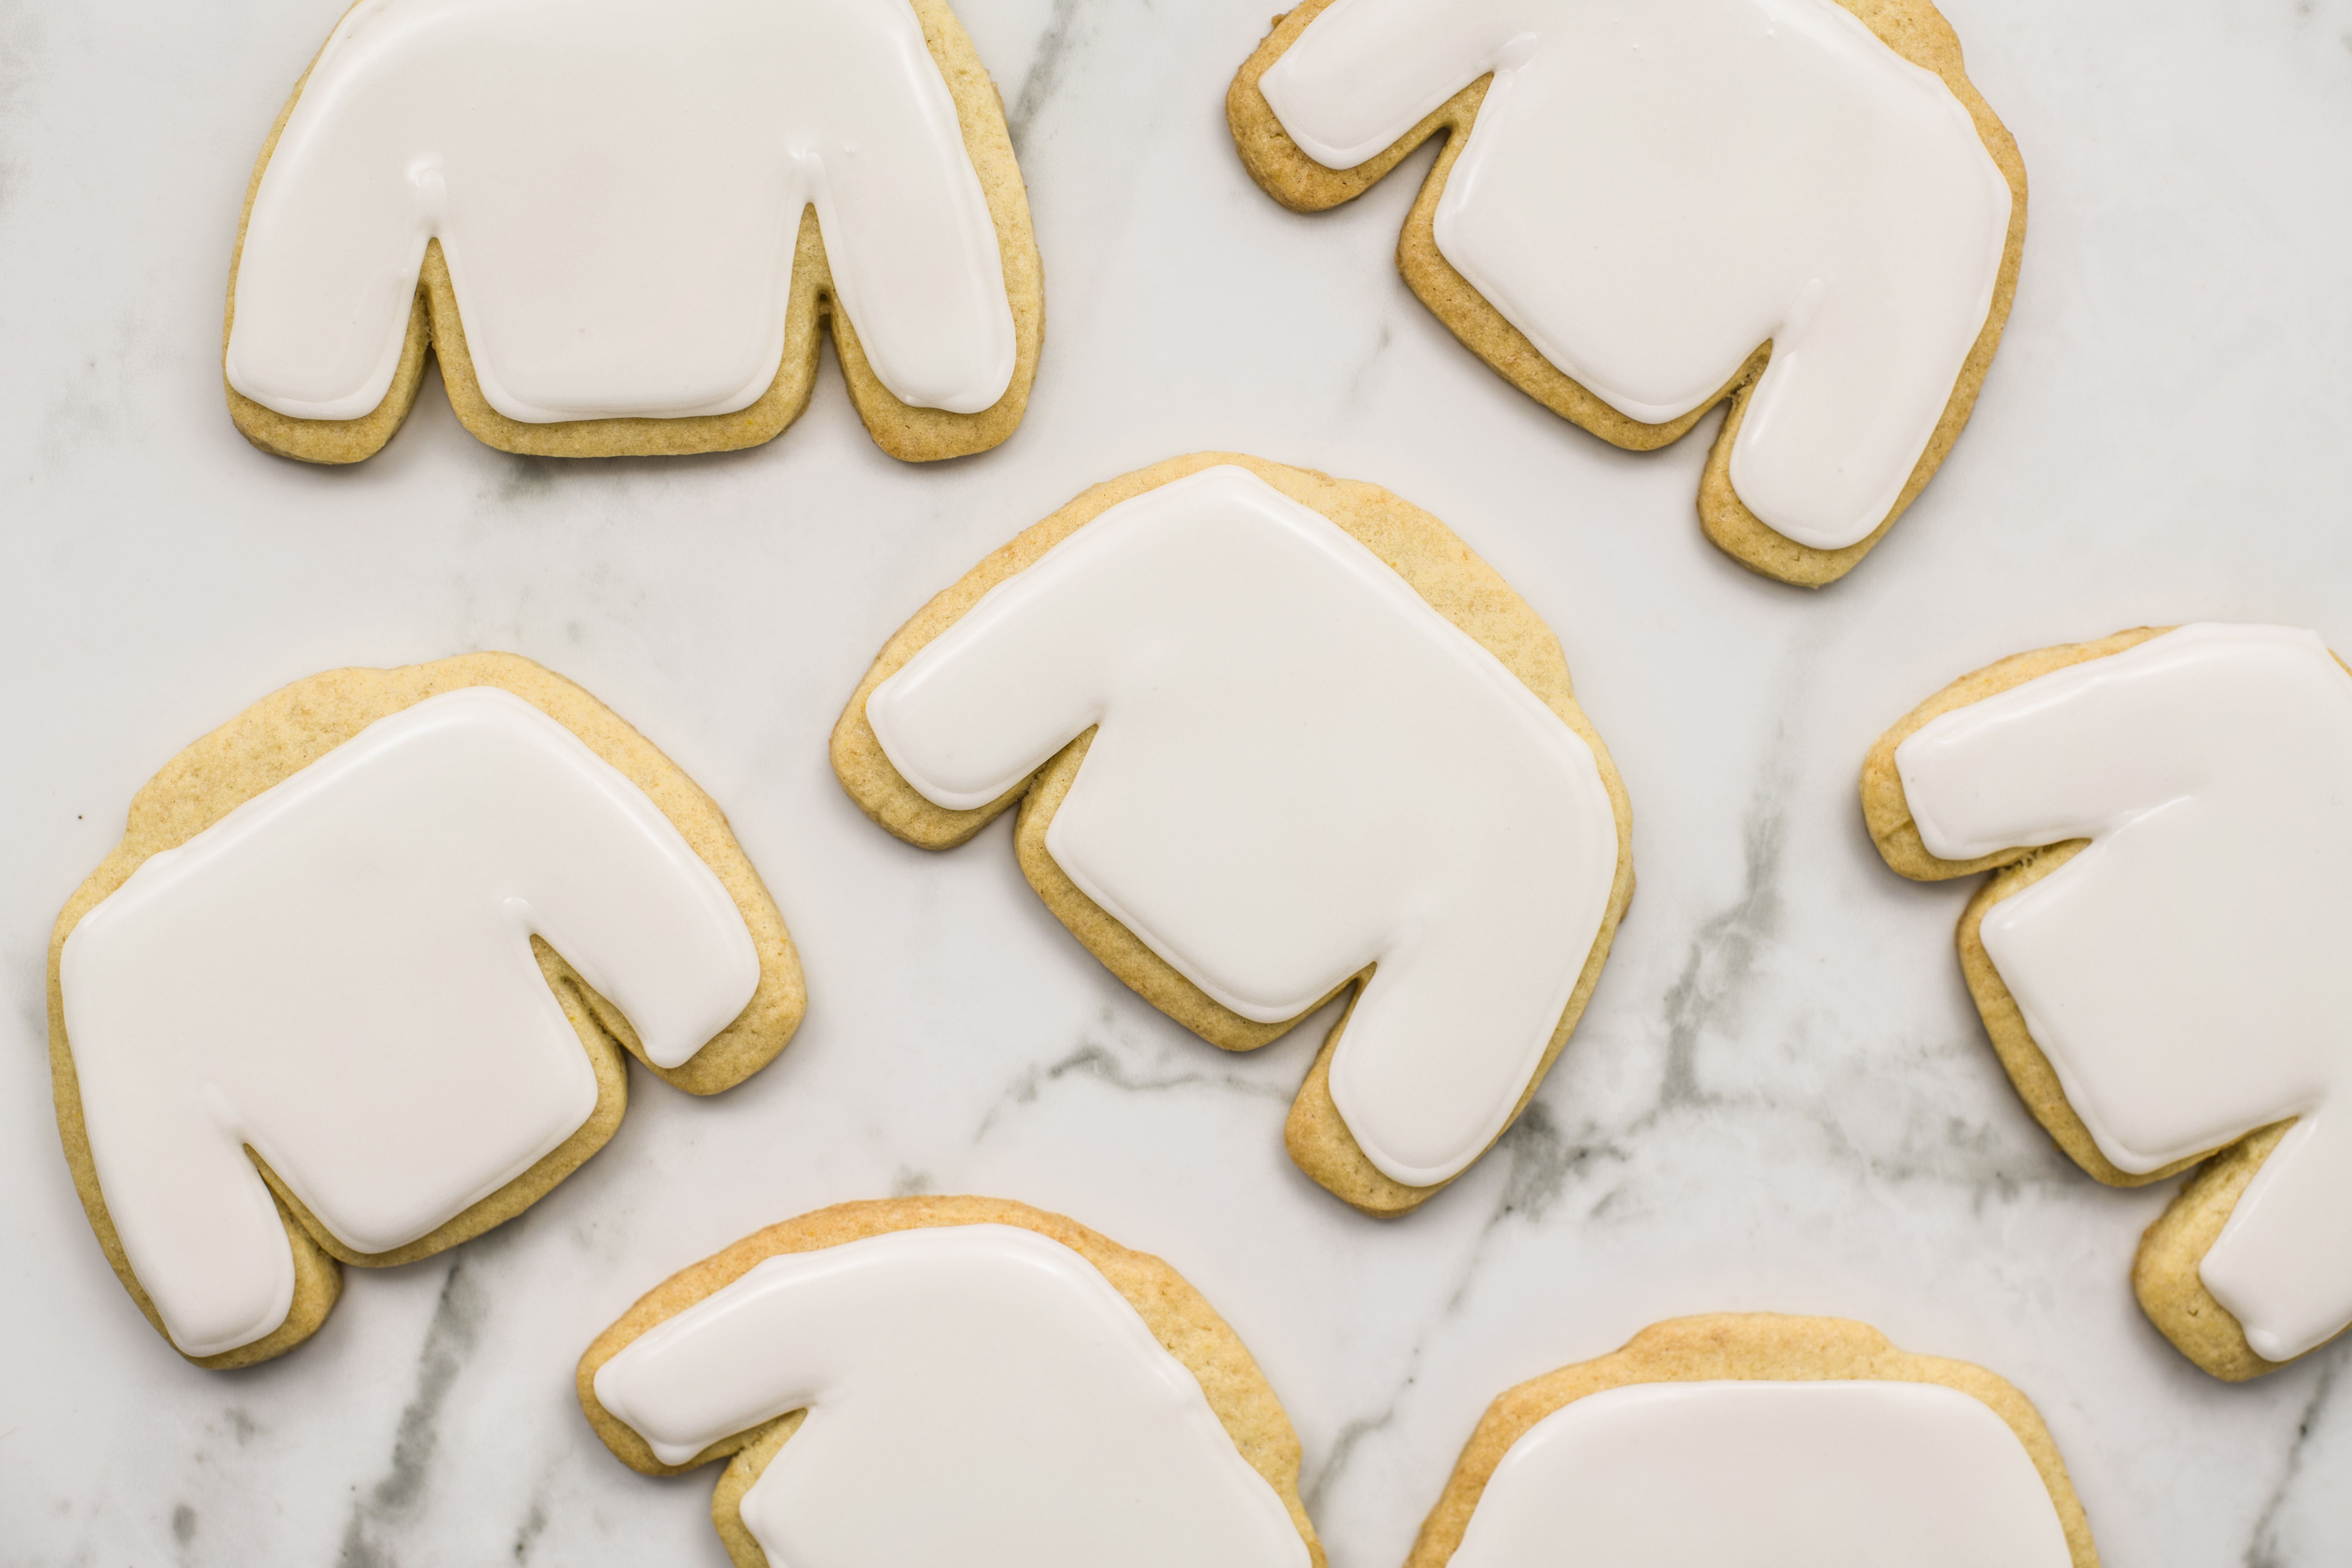 Filling center of cookies with frosting